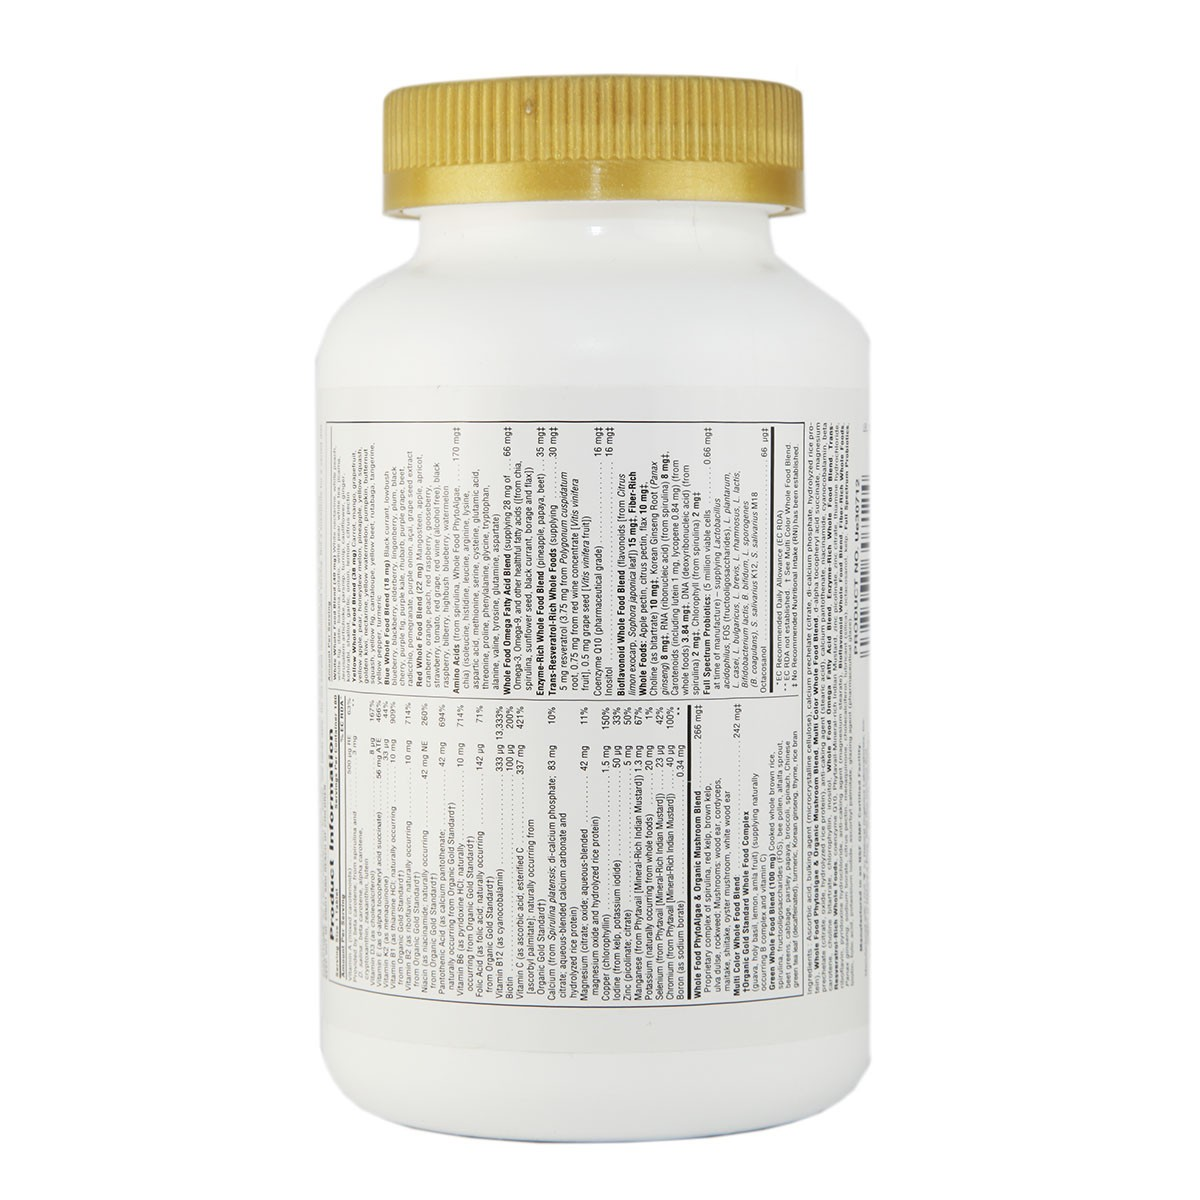 Natures Plus Source of Life GOLD Tablets